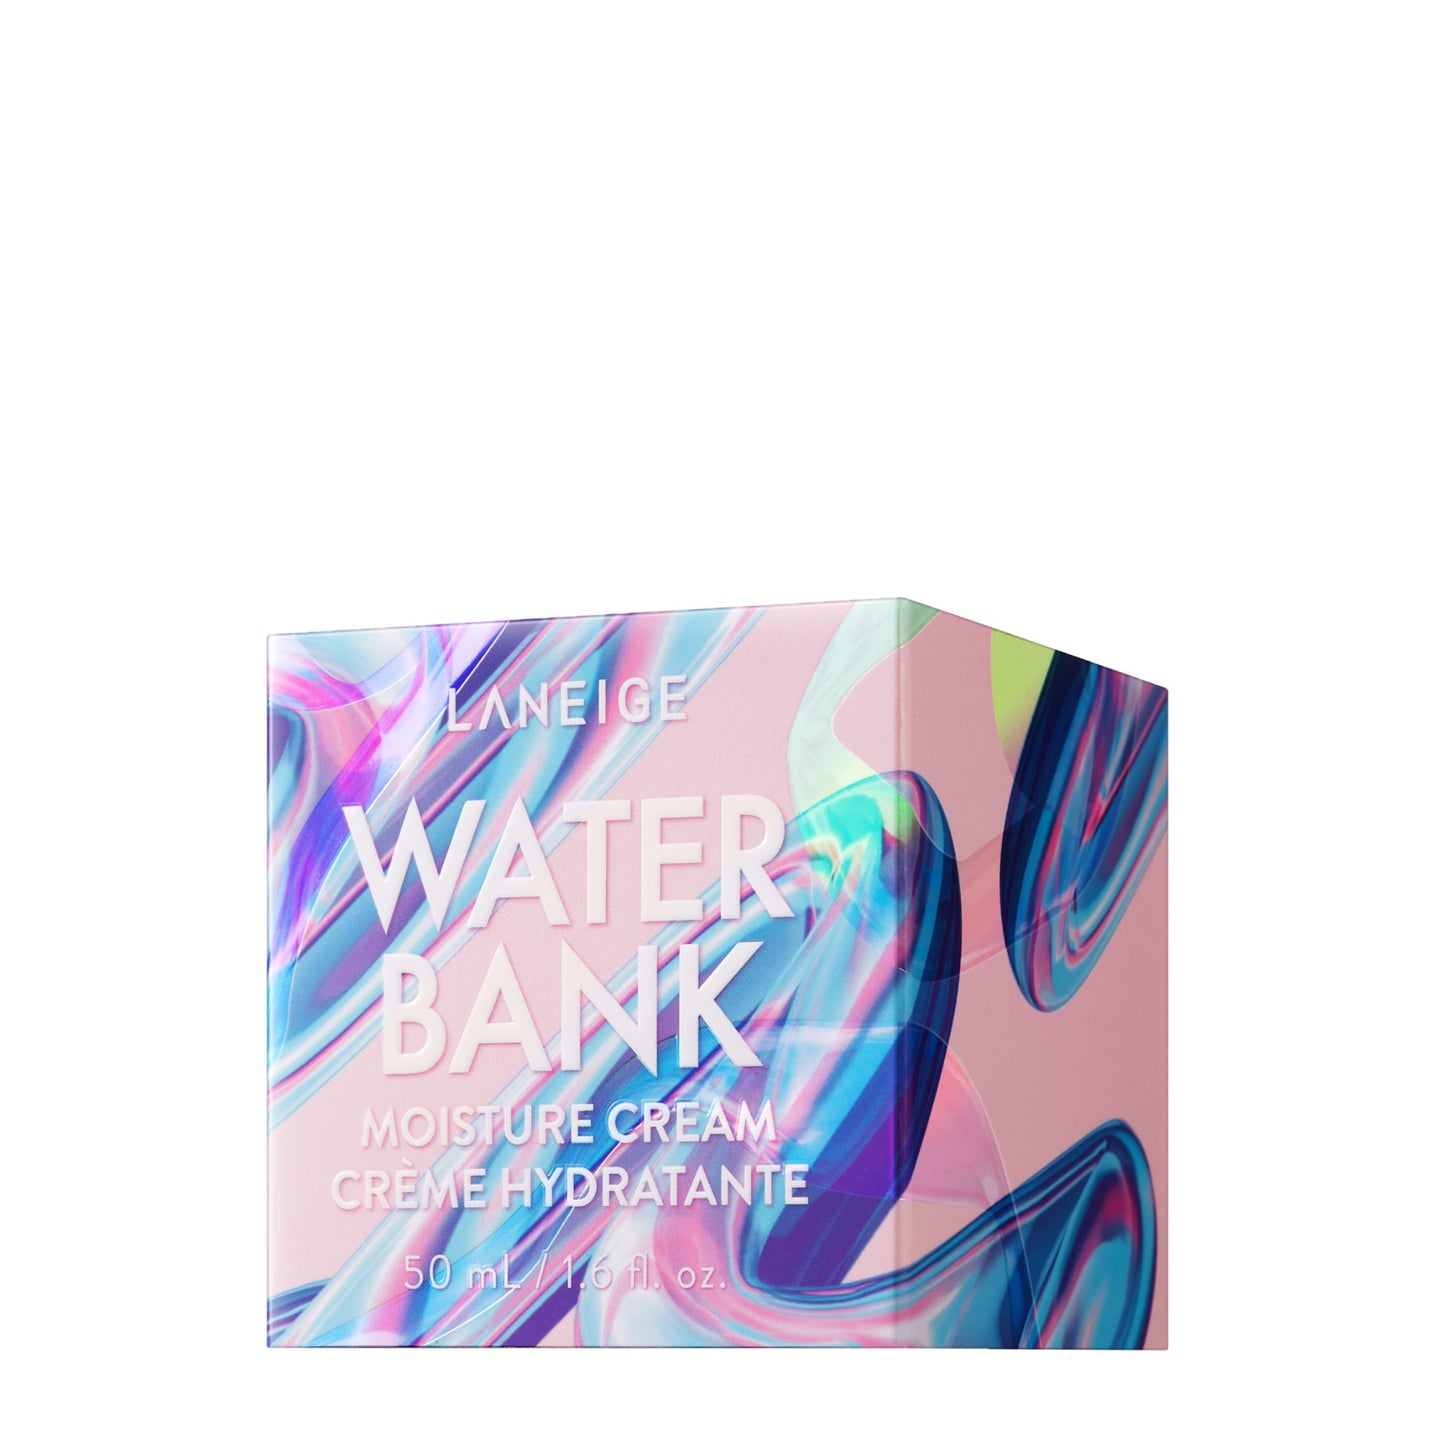 Water Bank Moisture Cream (Limited Edition)